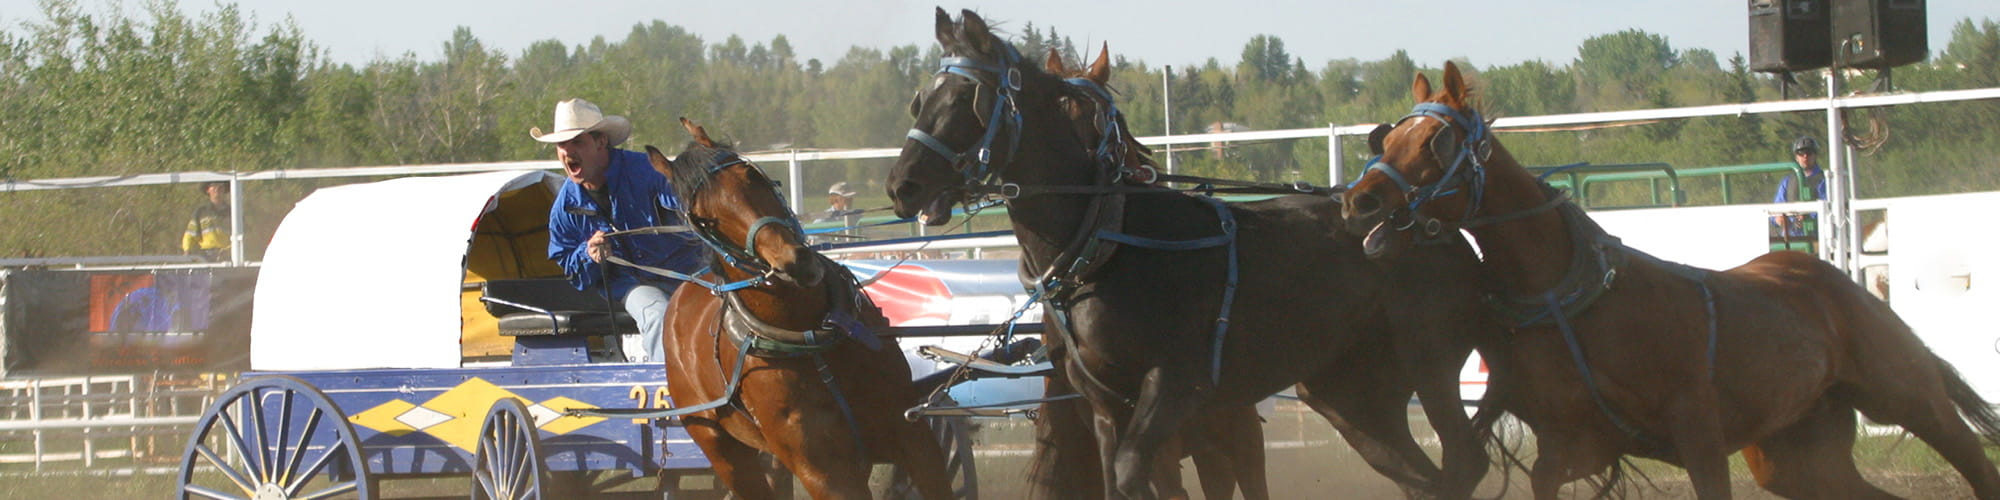 chuckwagon racing team